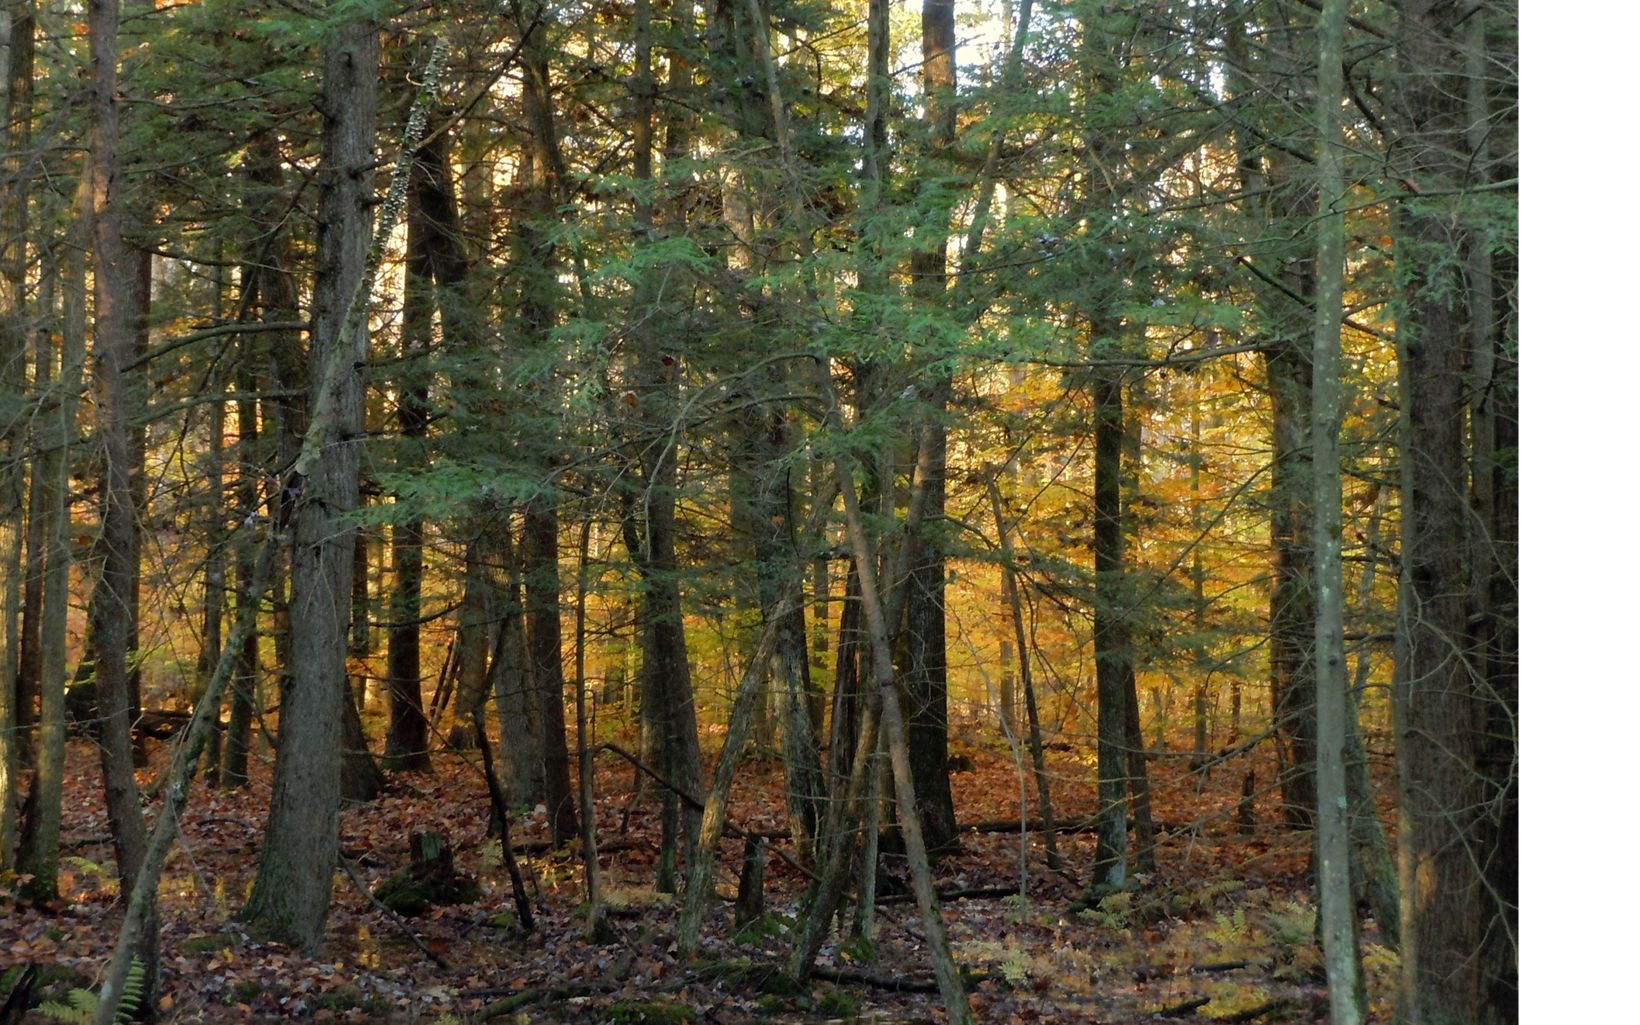 The preserve's hemlock-yellow birch swamp is very rare in Ohio. Morgan Swamp is the only occurrence of this type of habitat in the state.